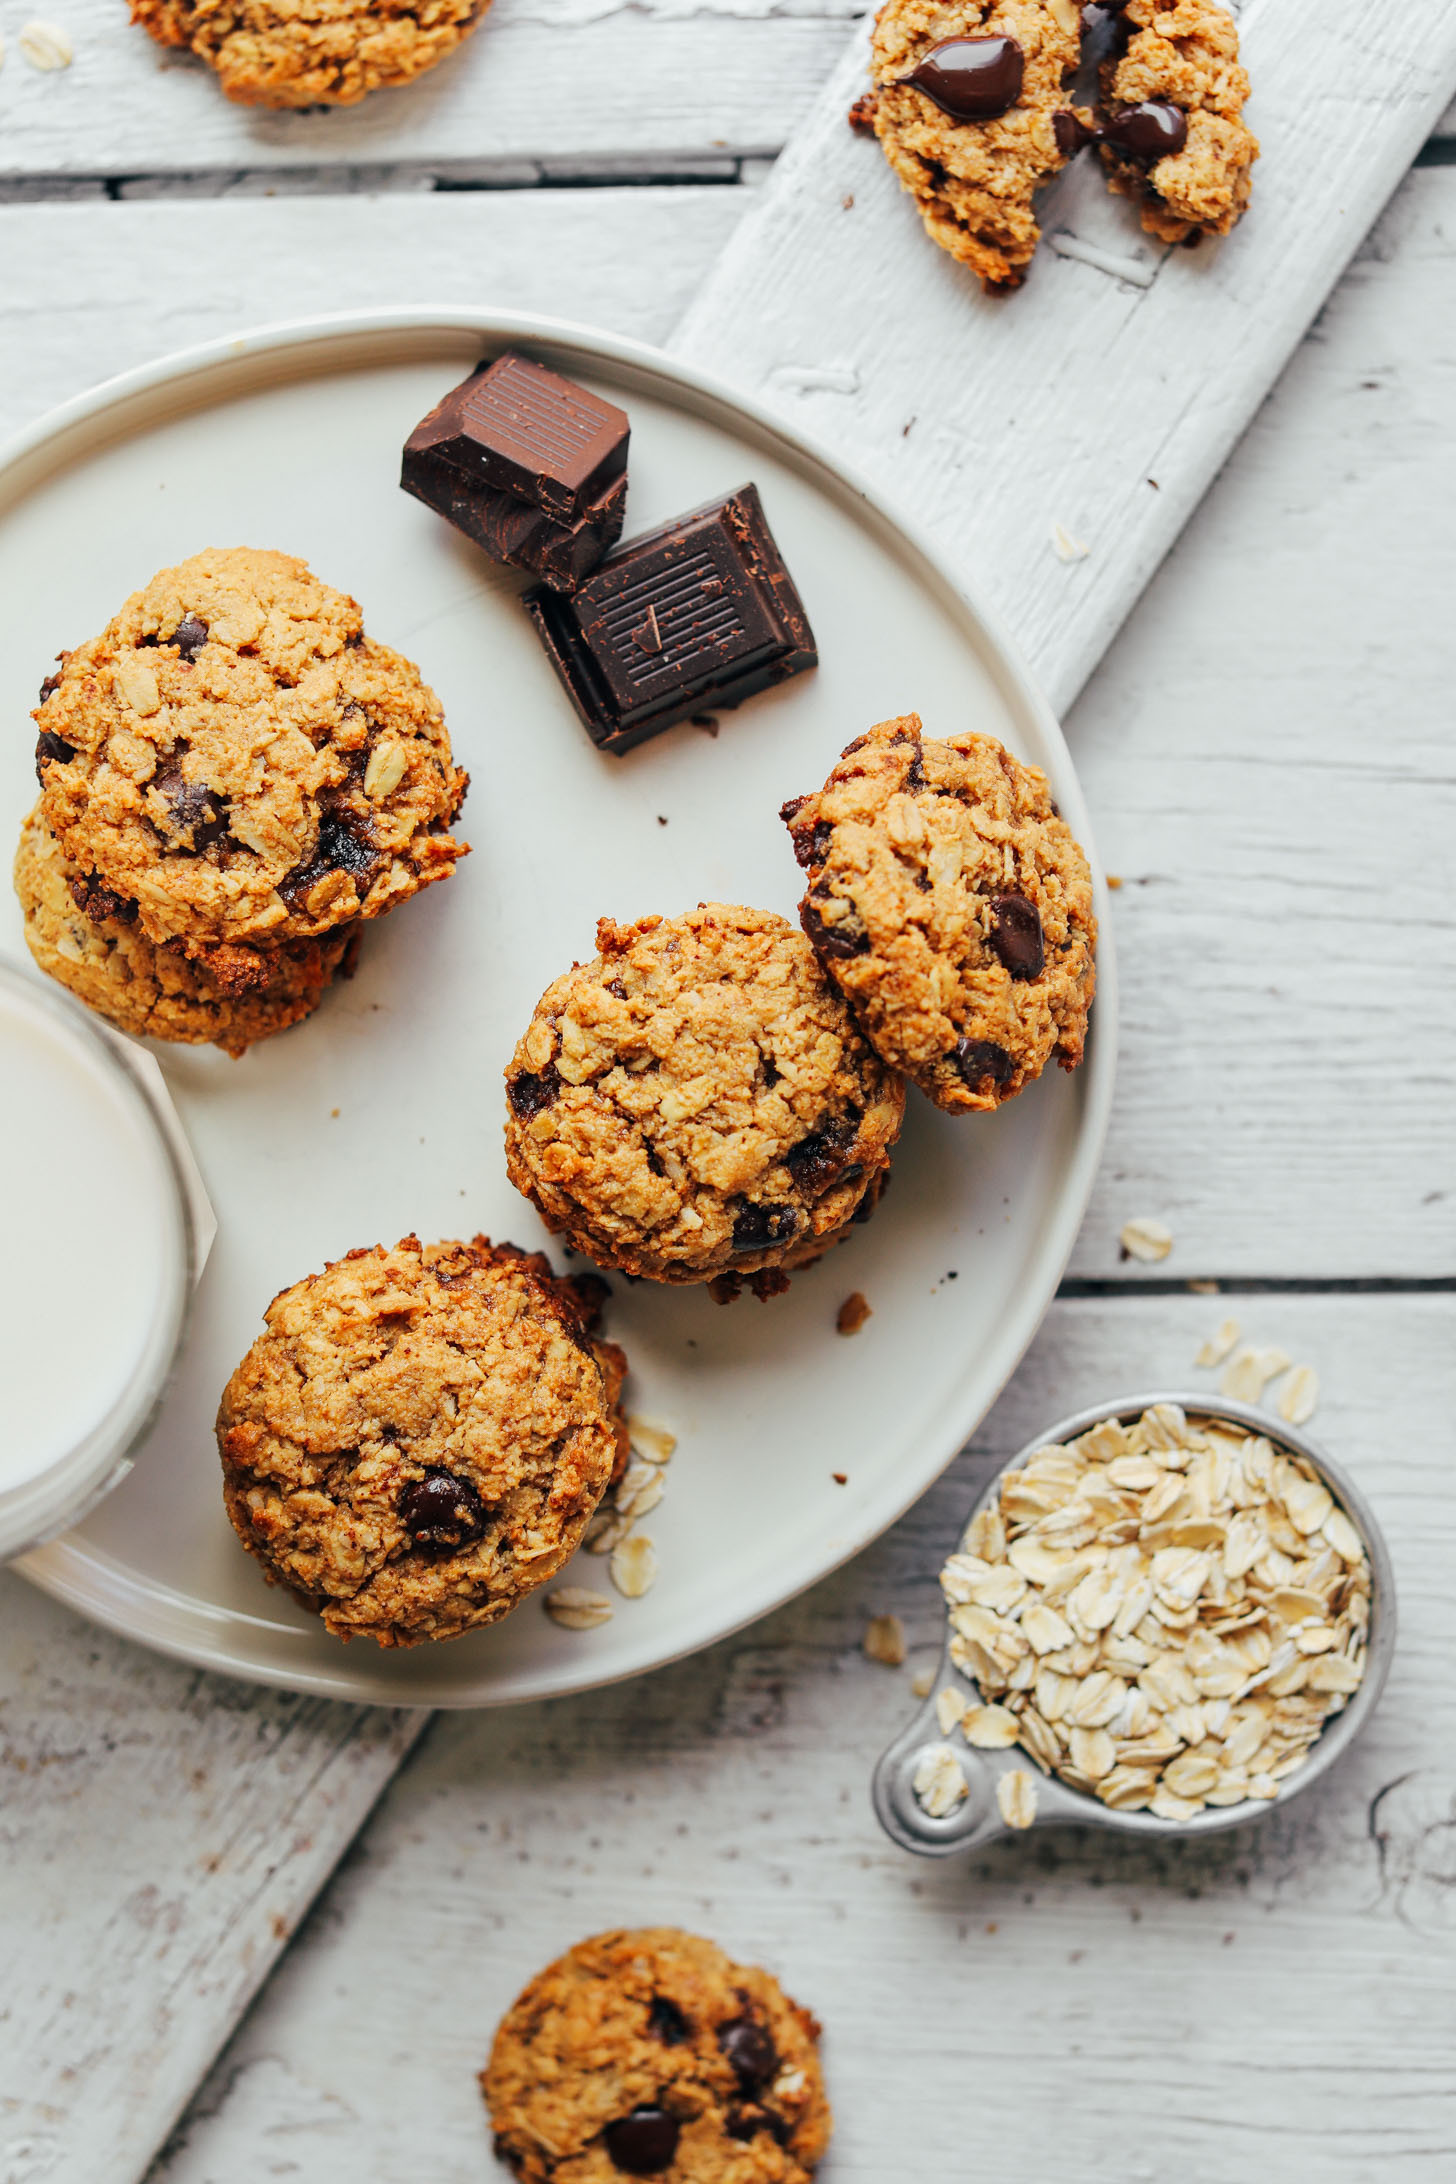 Easy Healthy Oatmeal Cookies  Gluten Free Oatmeal Chocolate Chip Cookies